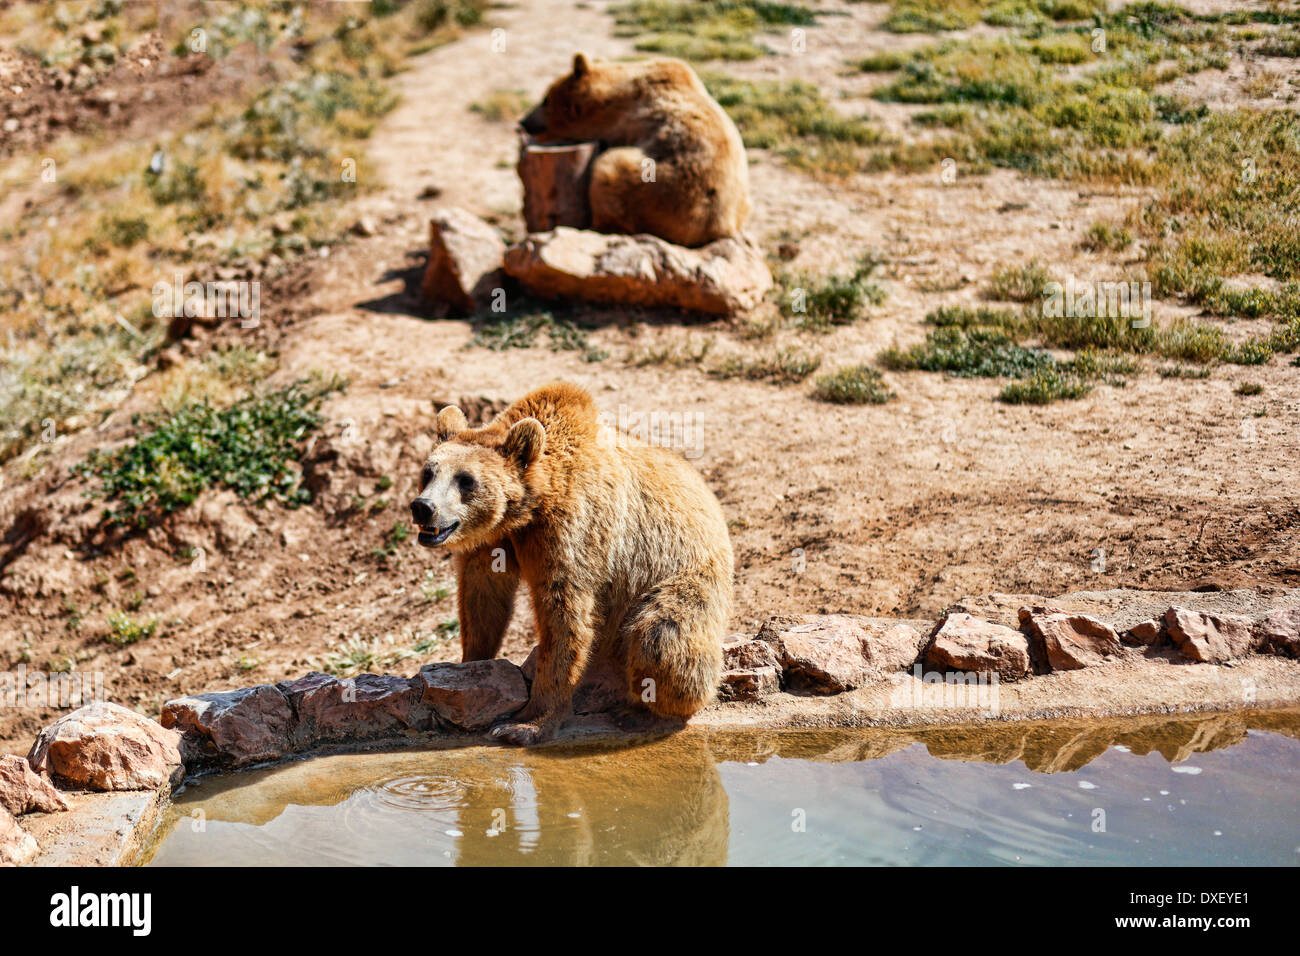 Bears in the zoo - Stock Image